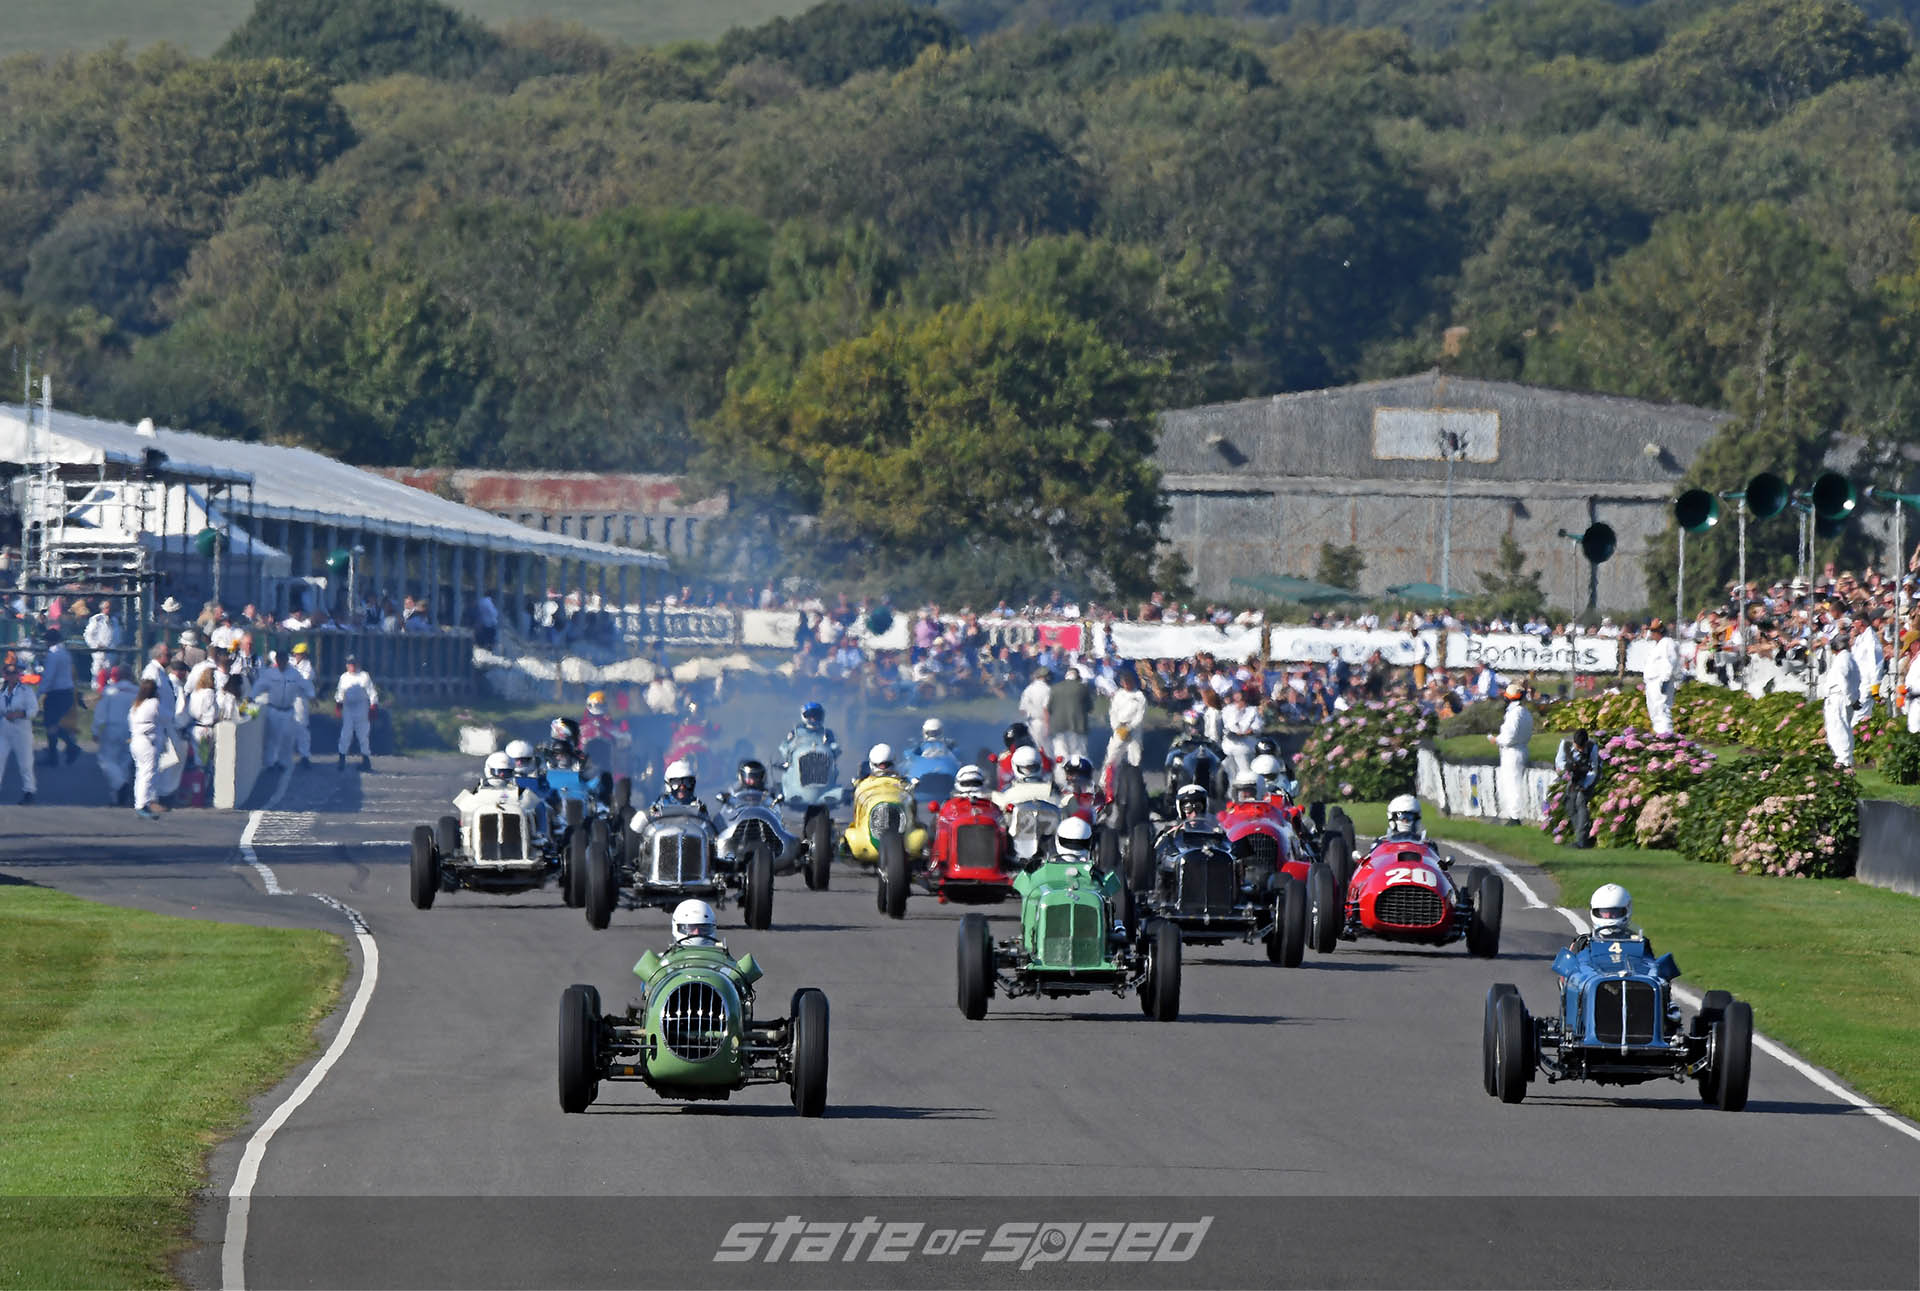 More open wheel racing at Goodwood Revival